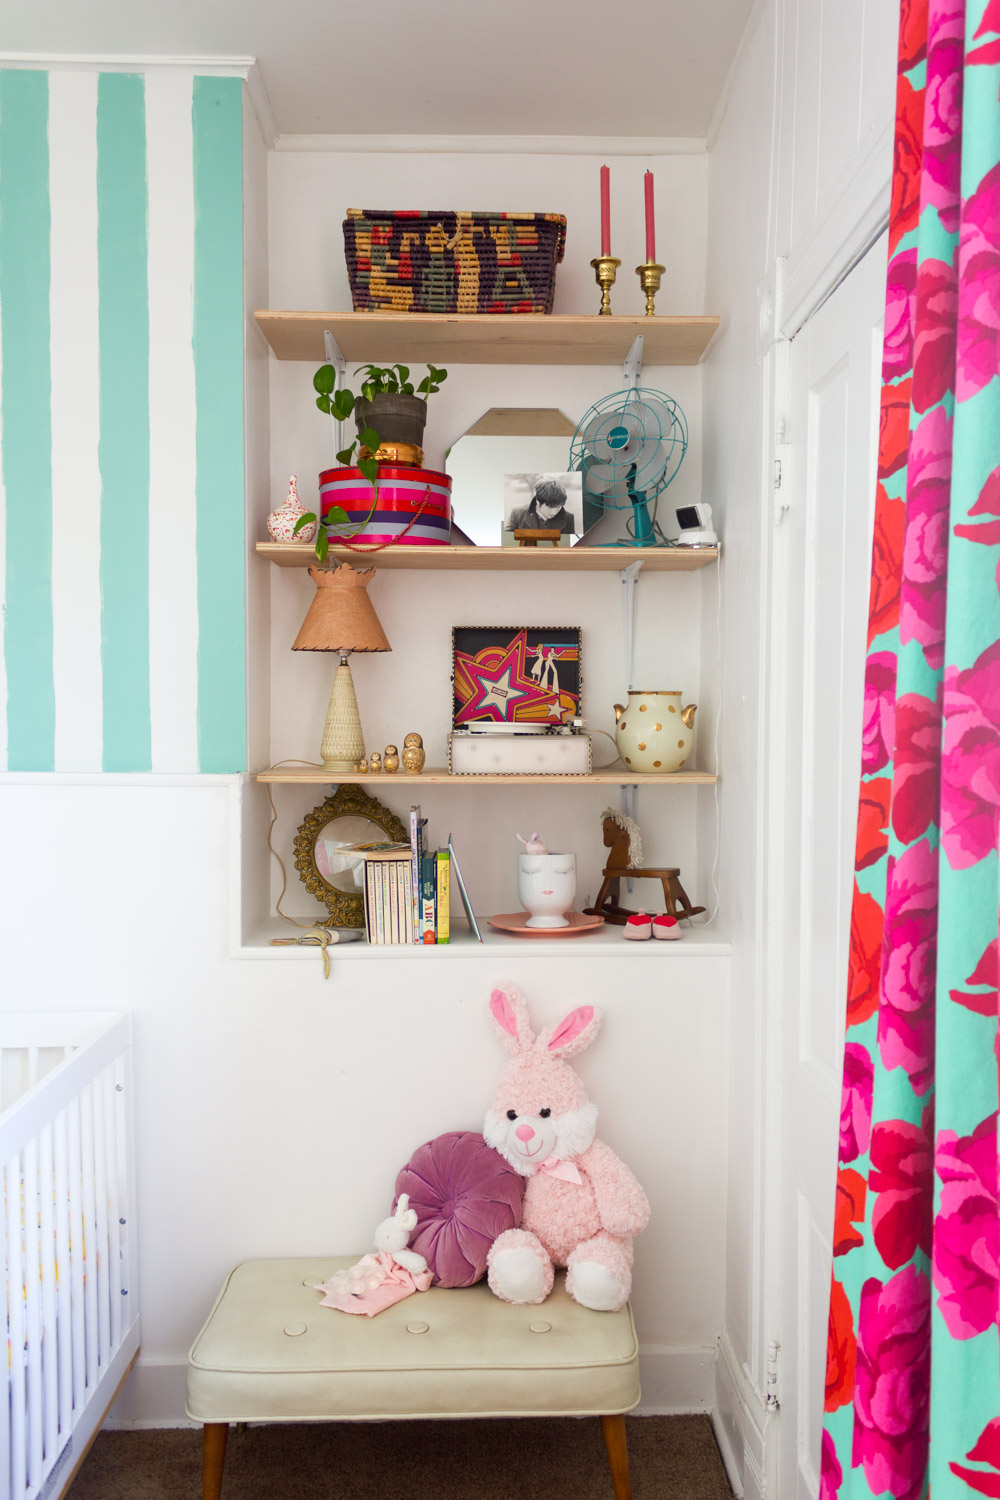 Copy of Colorful, pattern-filled nursery shelves, DIY rose-print curtains